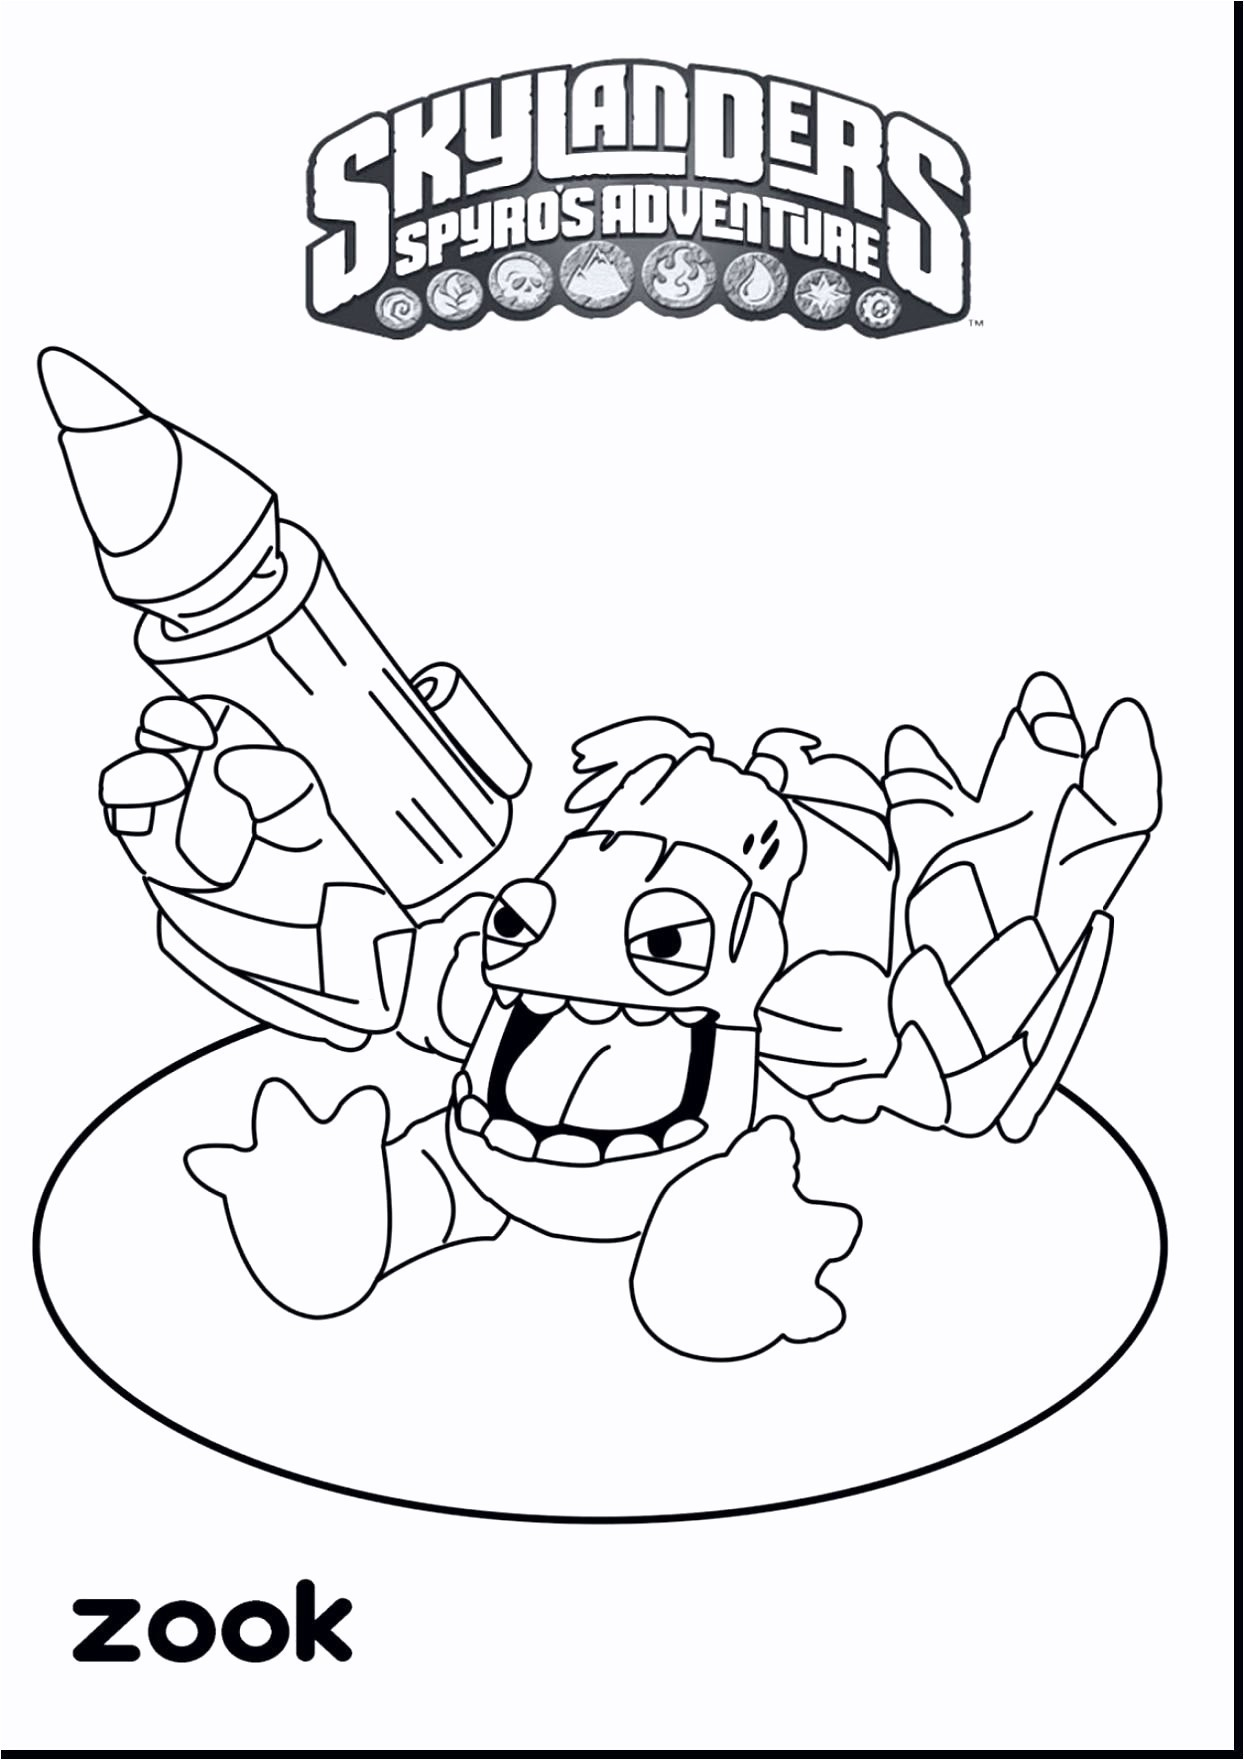 Hiking Coloring Pages  Download 4t - Save it to your computer